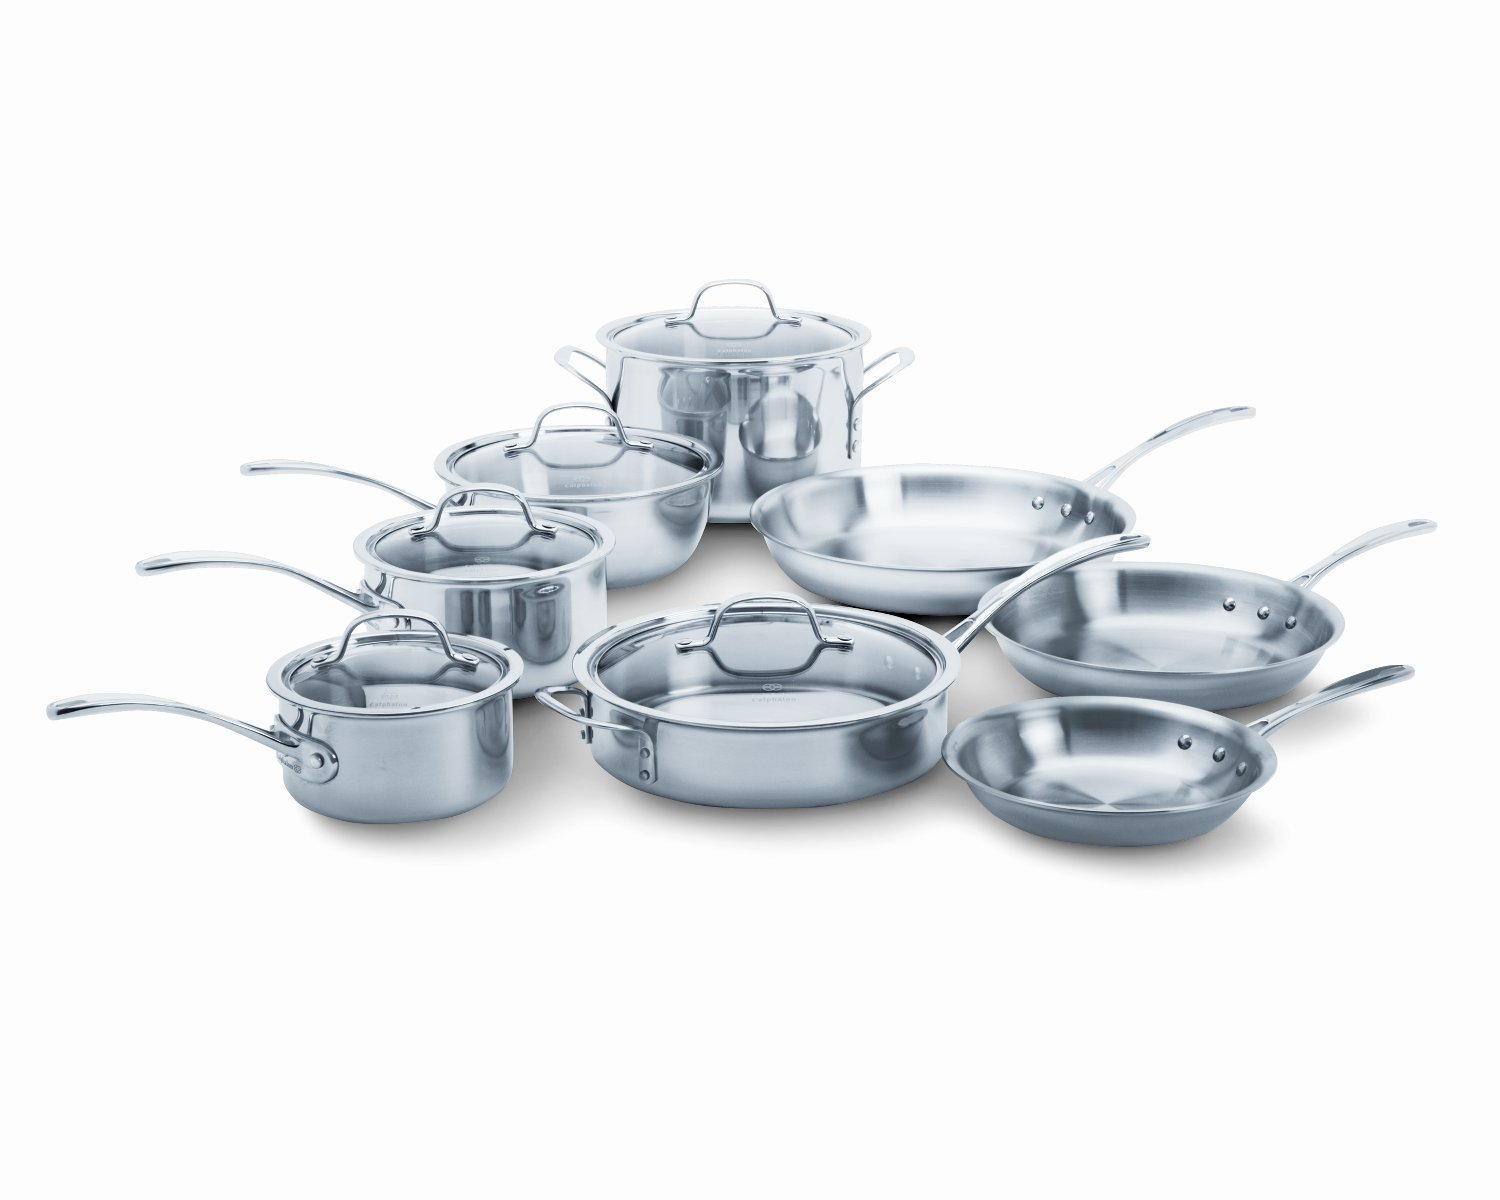 Best Stainless Steel Cookware Under 1000